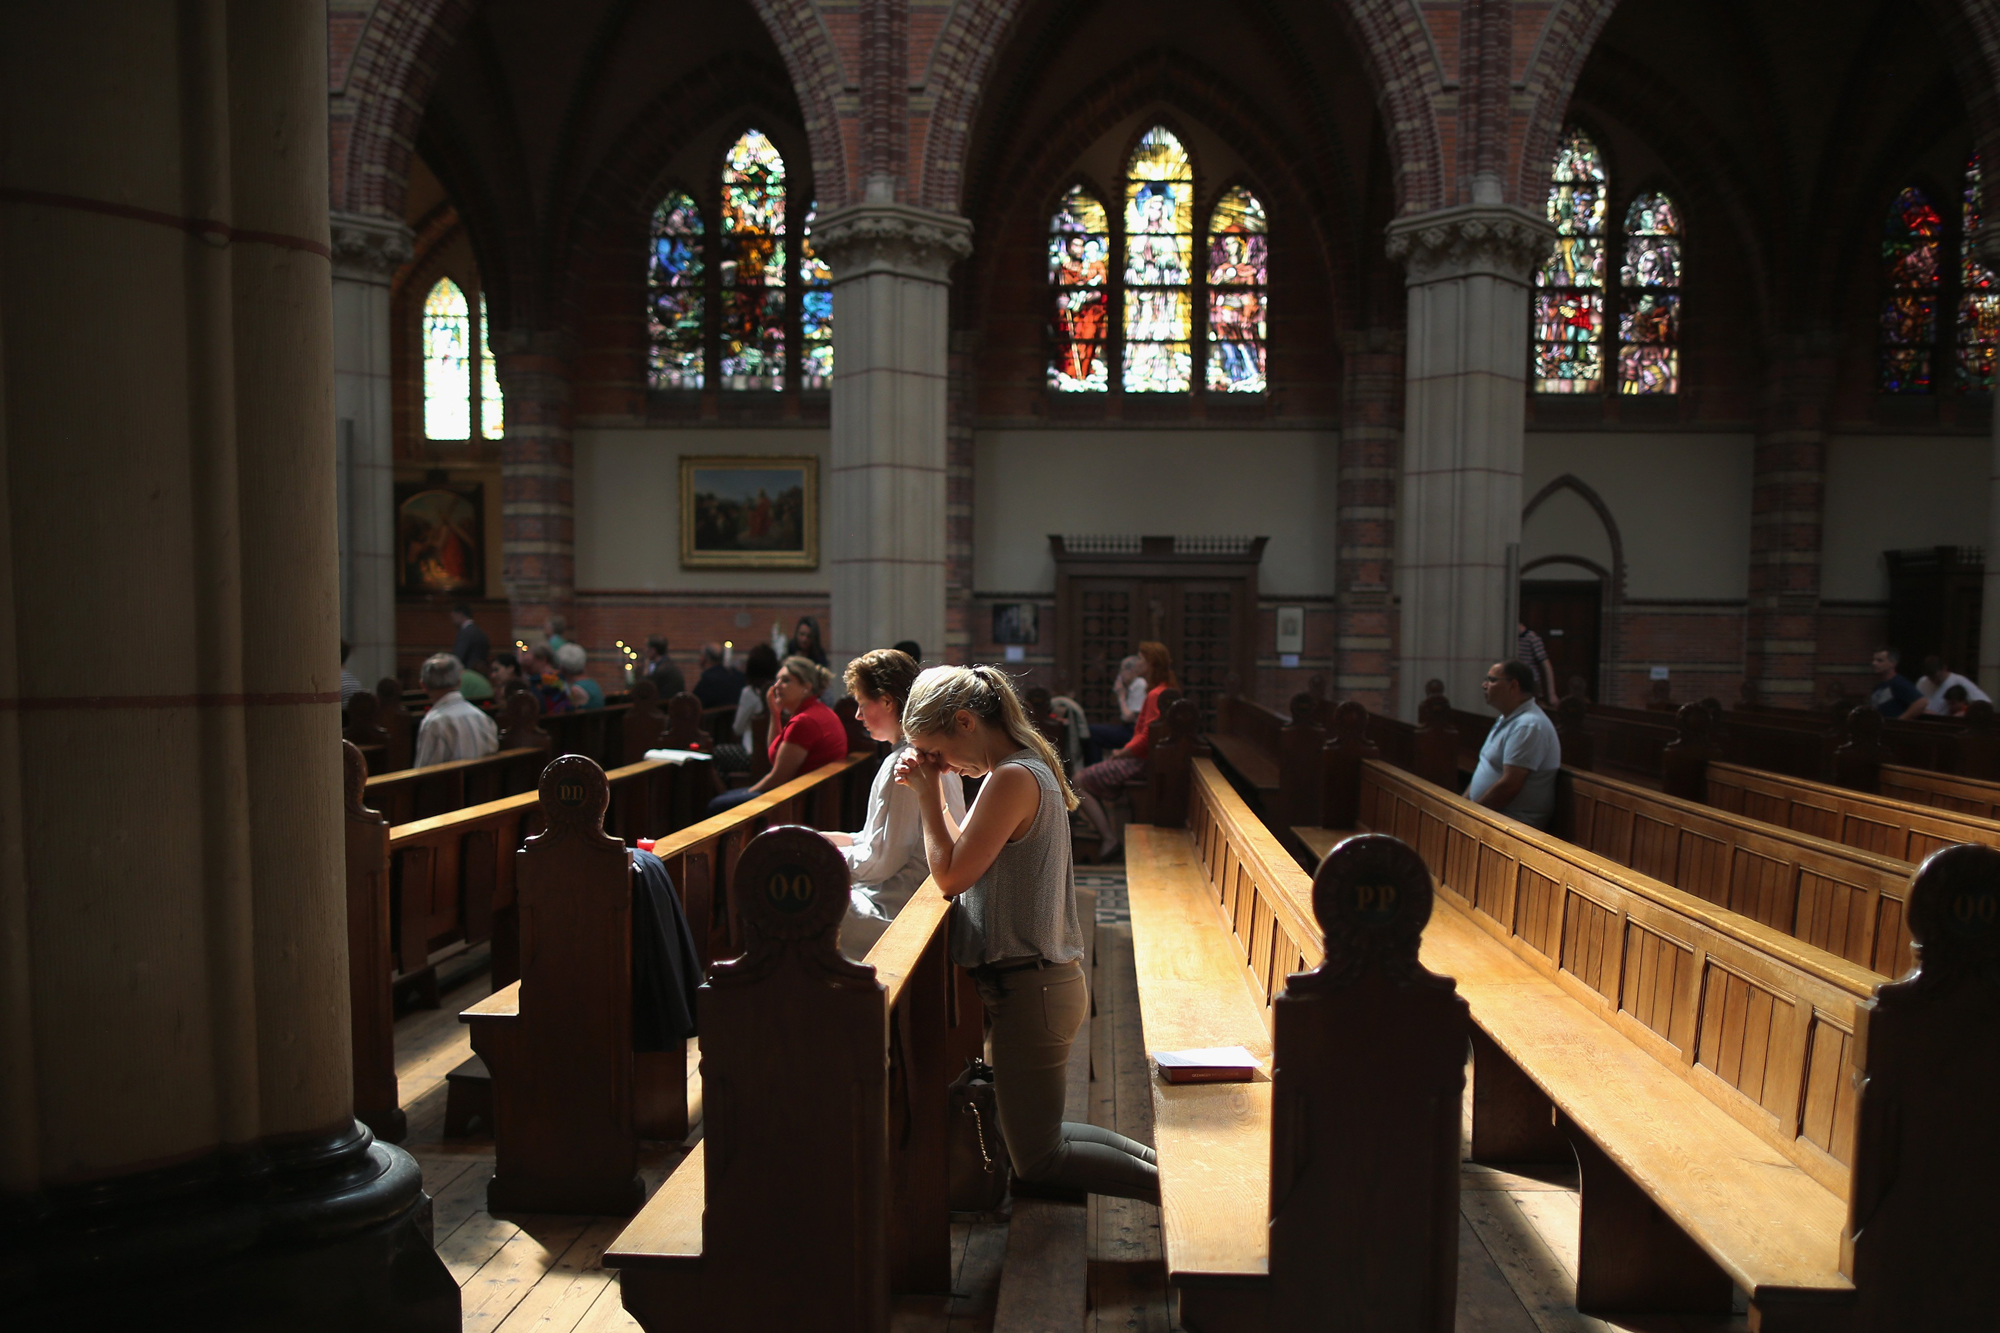 Local people pray during a special mass in Saint Vitus Church in memory of the victims of Malaysia Airlines flight MH17 on July 20, 2014 in Hilversum, Netherlands.